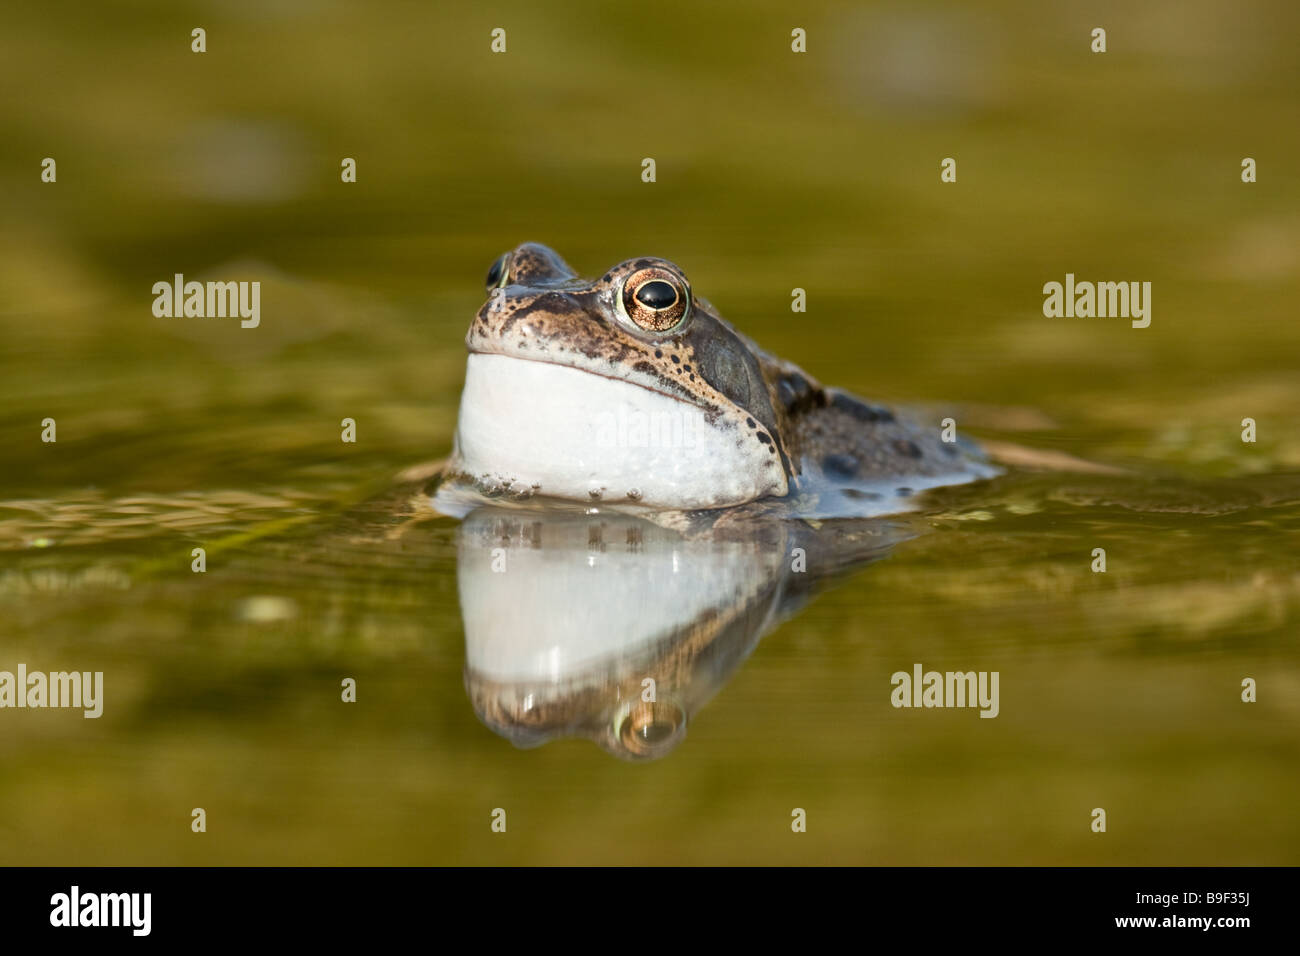 Common Frog (Rana temporaria) croaking, with head protruding from garden pond, Cambridgeshire, England - Stock Image